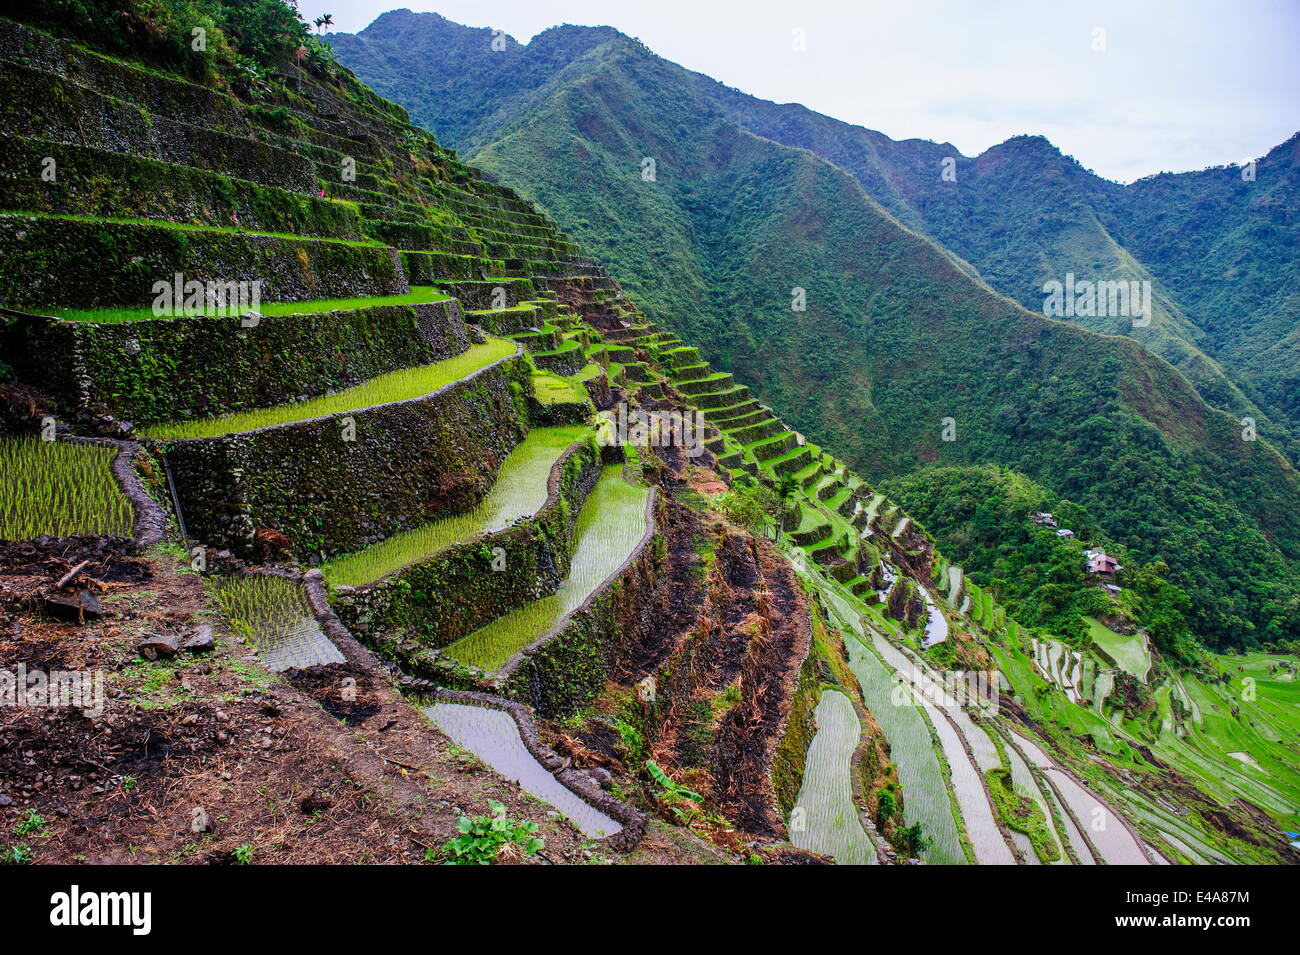 Batad rice terraces, part of the UNESCO World Heritage Site of Banaue, Luzon, Philippines, Southeast Asia, Asia - Stock Image